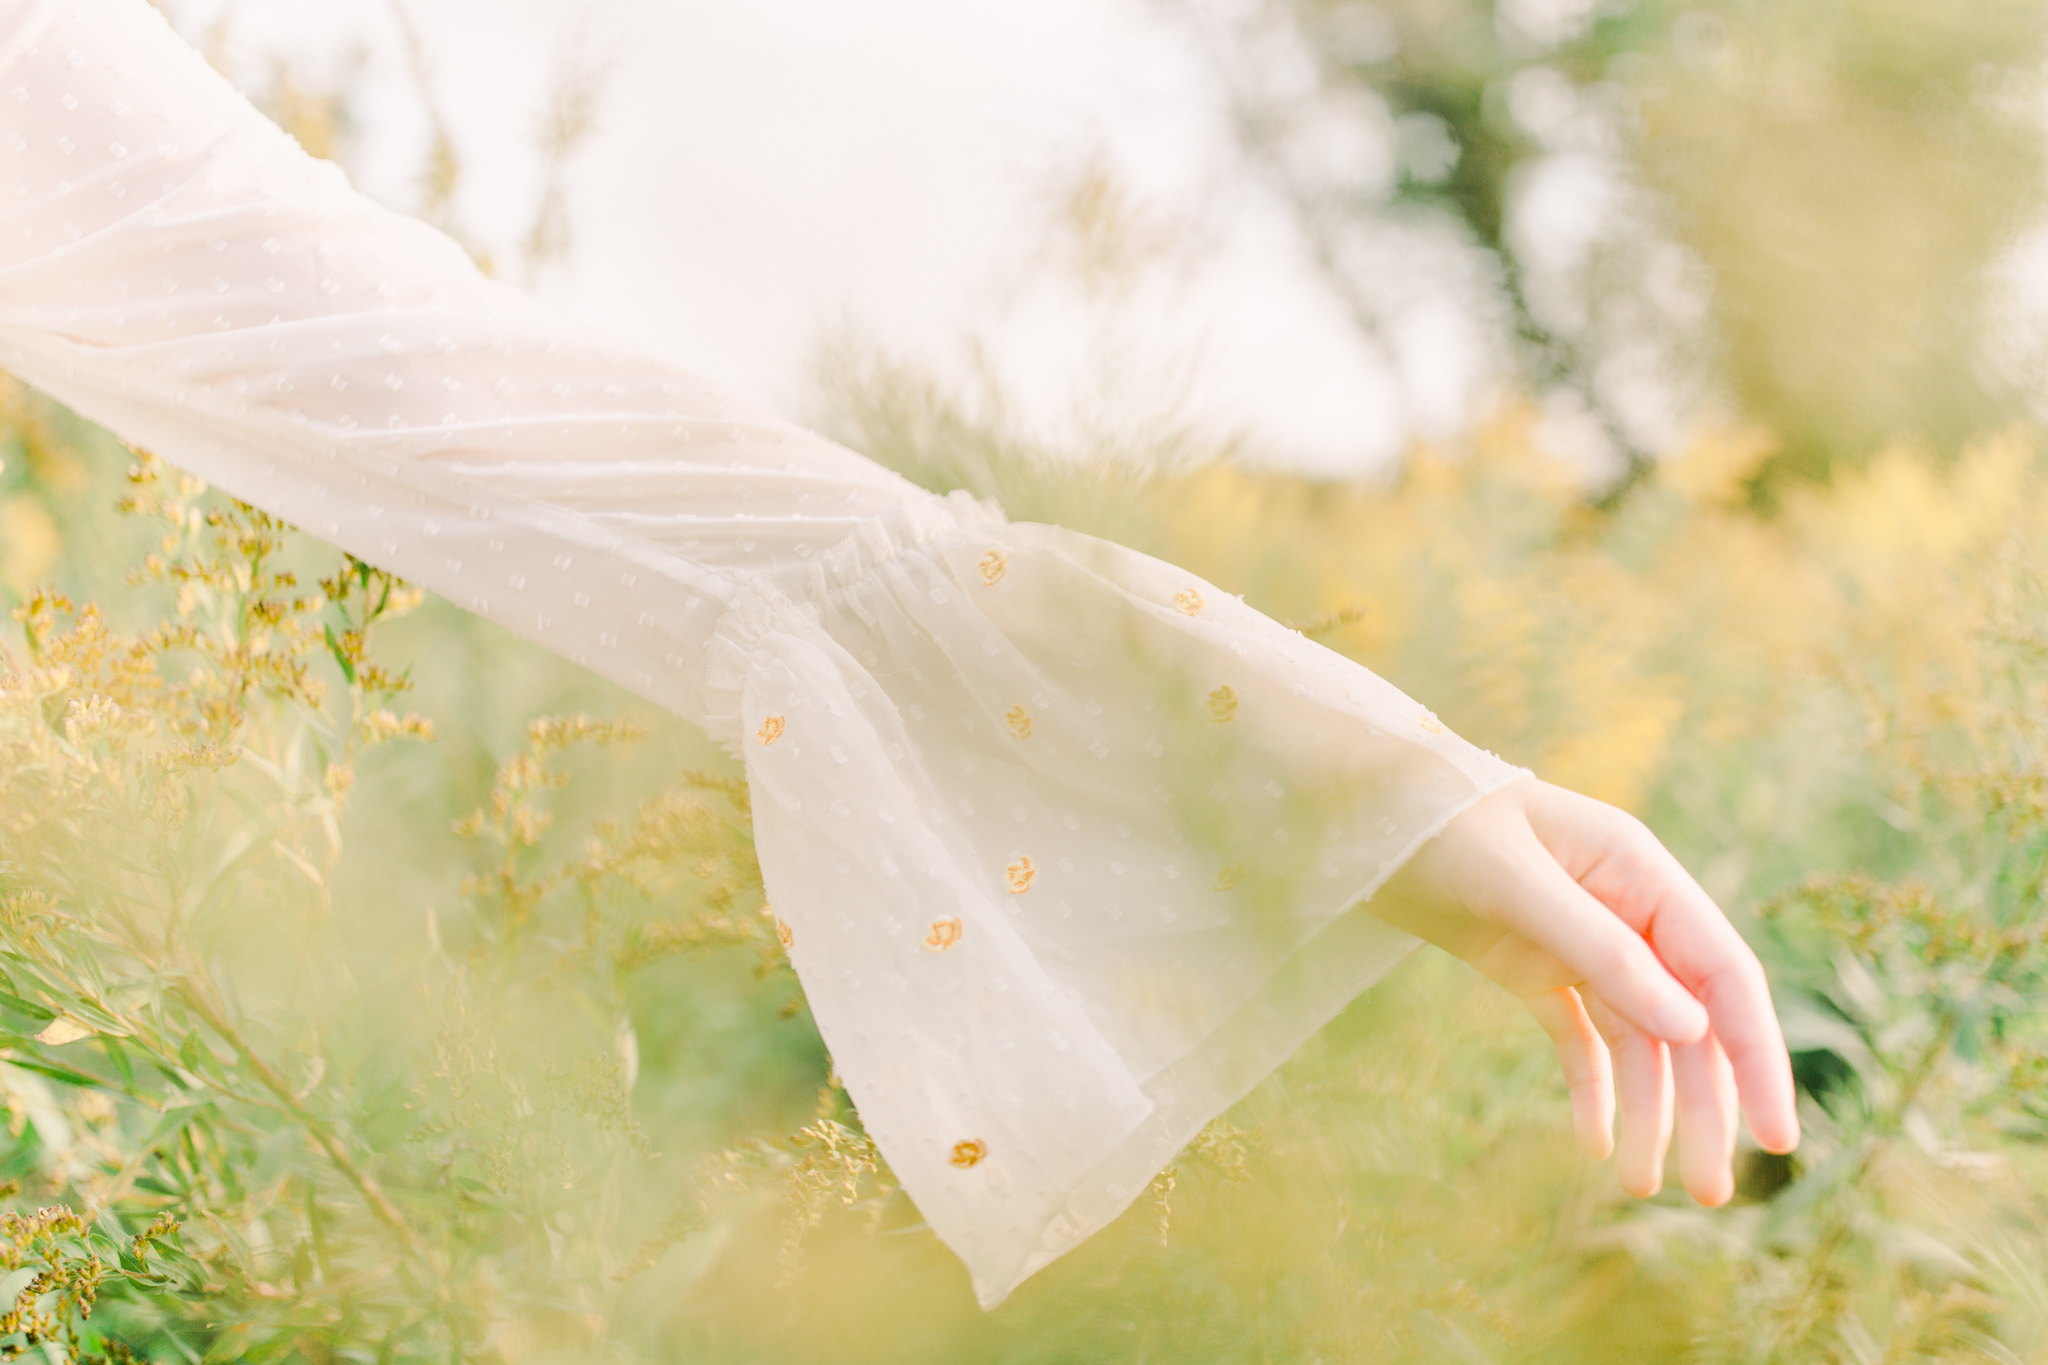 Light and Airy senior portrait photography